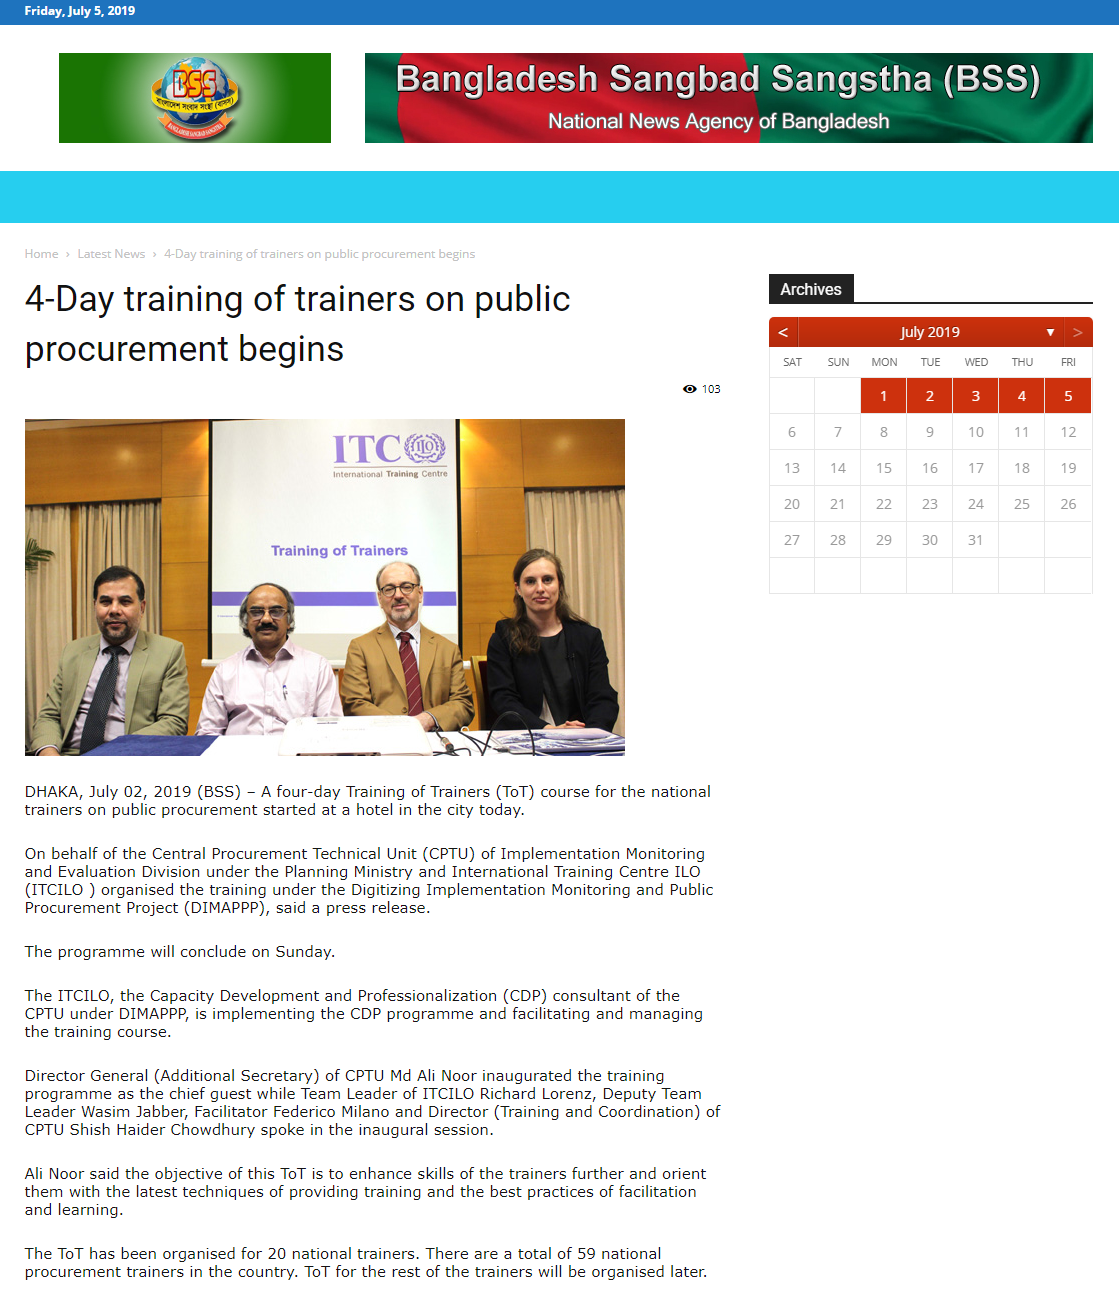 4-day training of trainers on public procurement begins